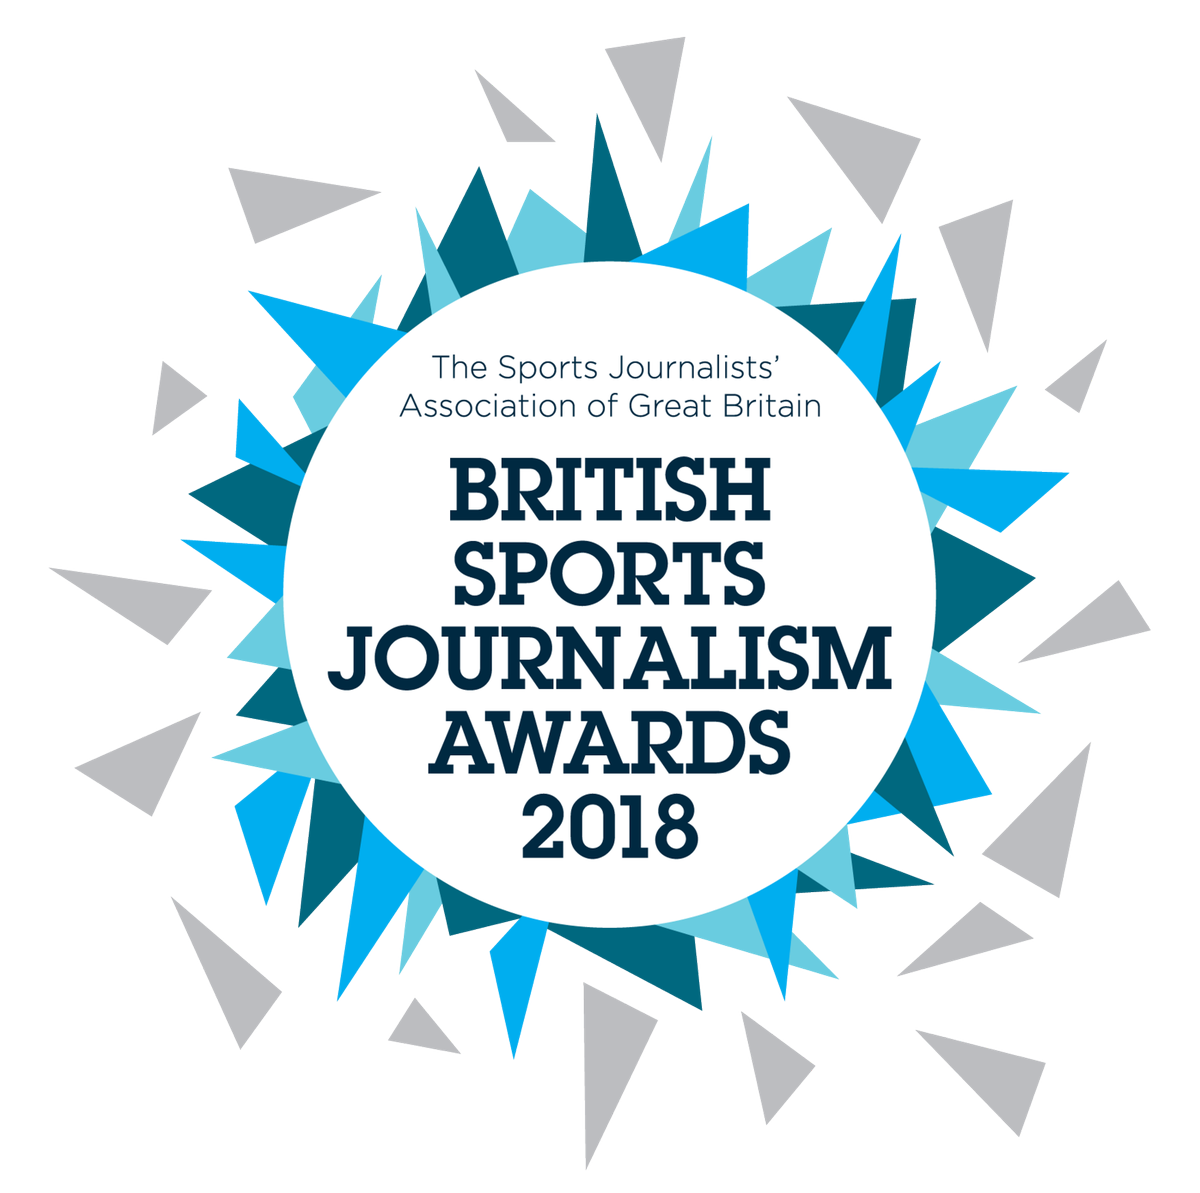 British Sports Journalism Awards - writing shortlists are out. https://www.sportsjournalists.co.uk/awards-news/british-sports-journalism-awards-2018-writing-shortlists/ … #sja2018